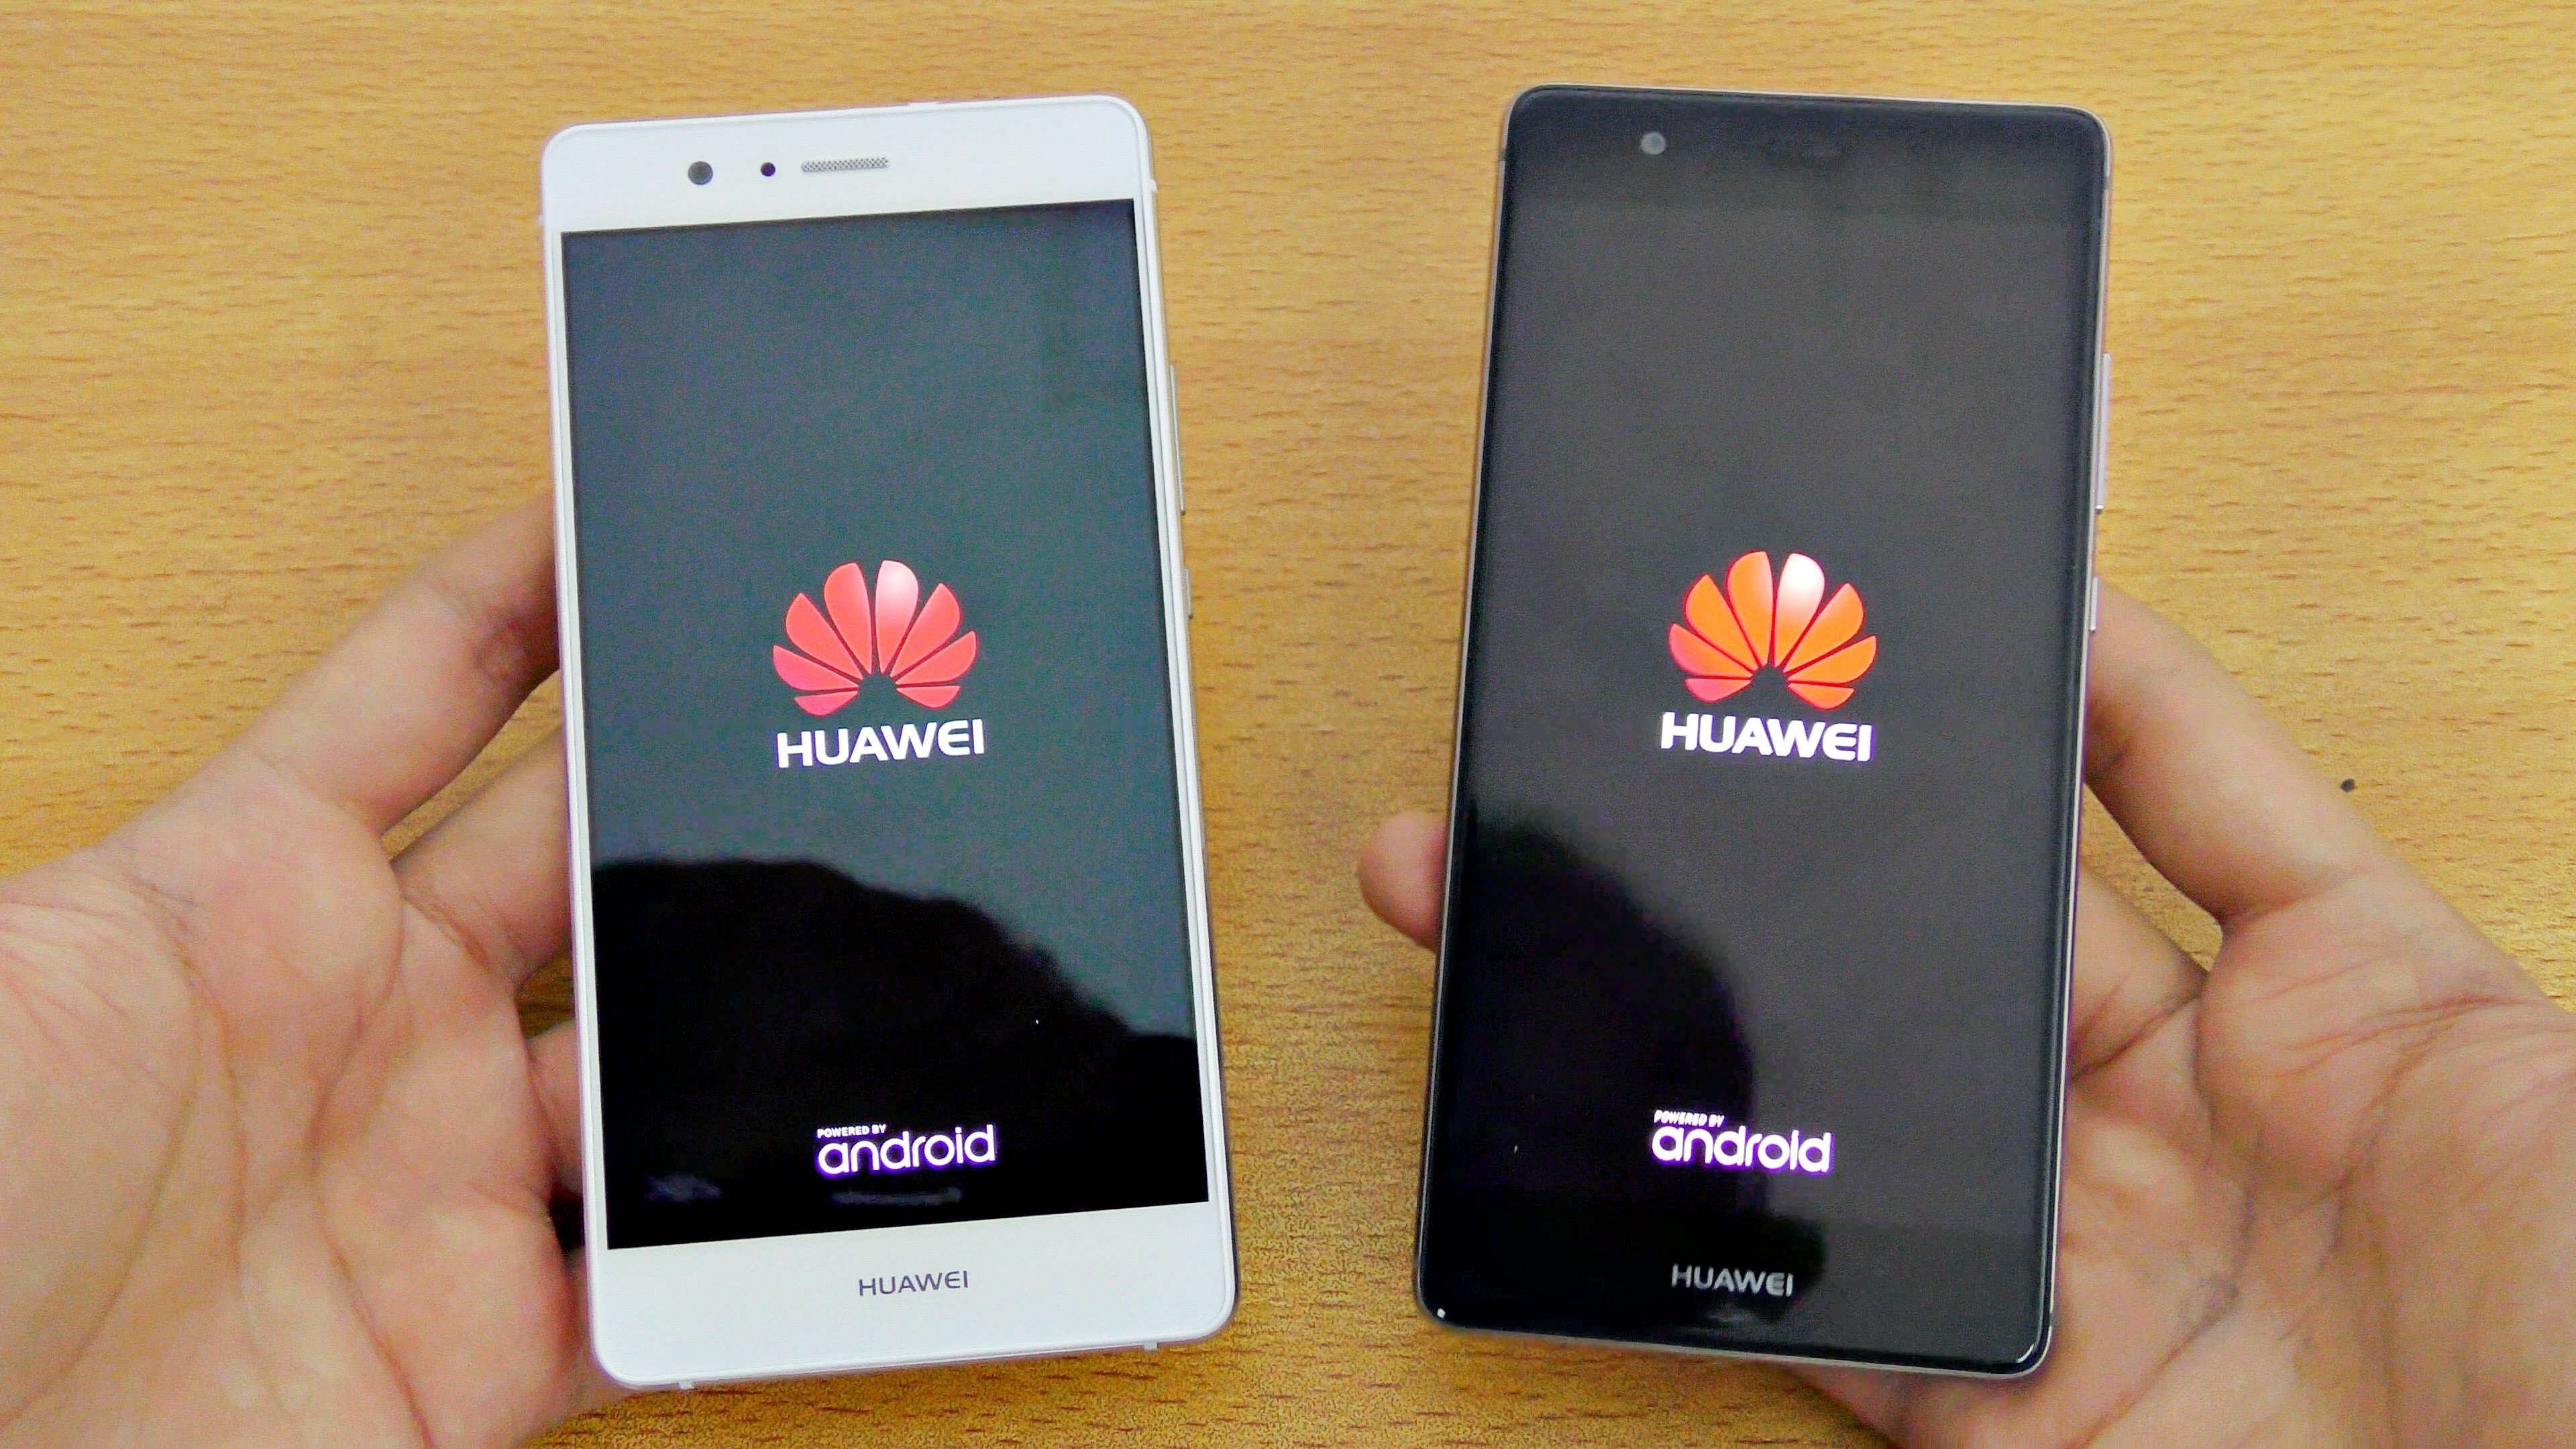 huawei p9 p9 plus and huawei p9 lite which smartphone to. Black Bedroom Furniture Sets. Home Design Ideas